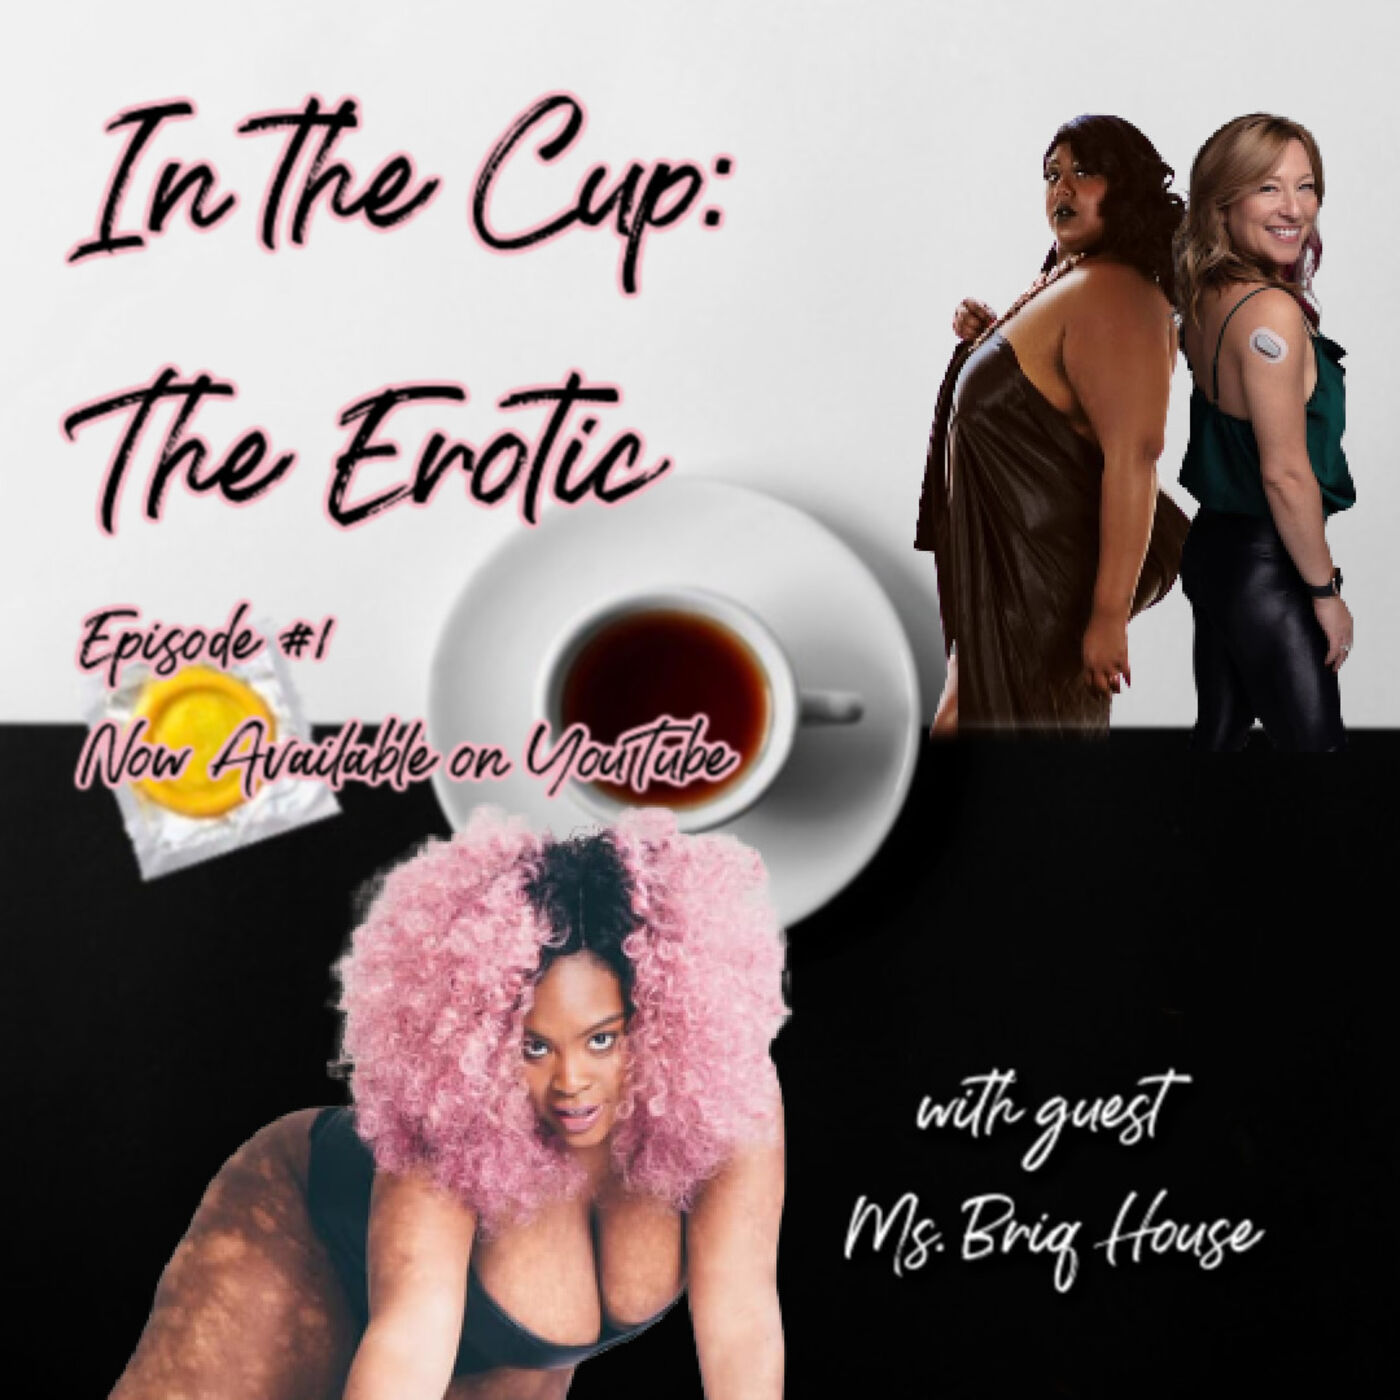 SexualiTea with special guest Ms. Briq House